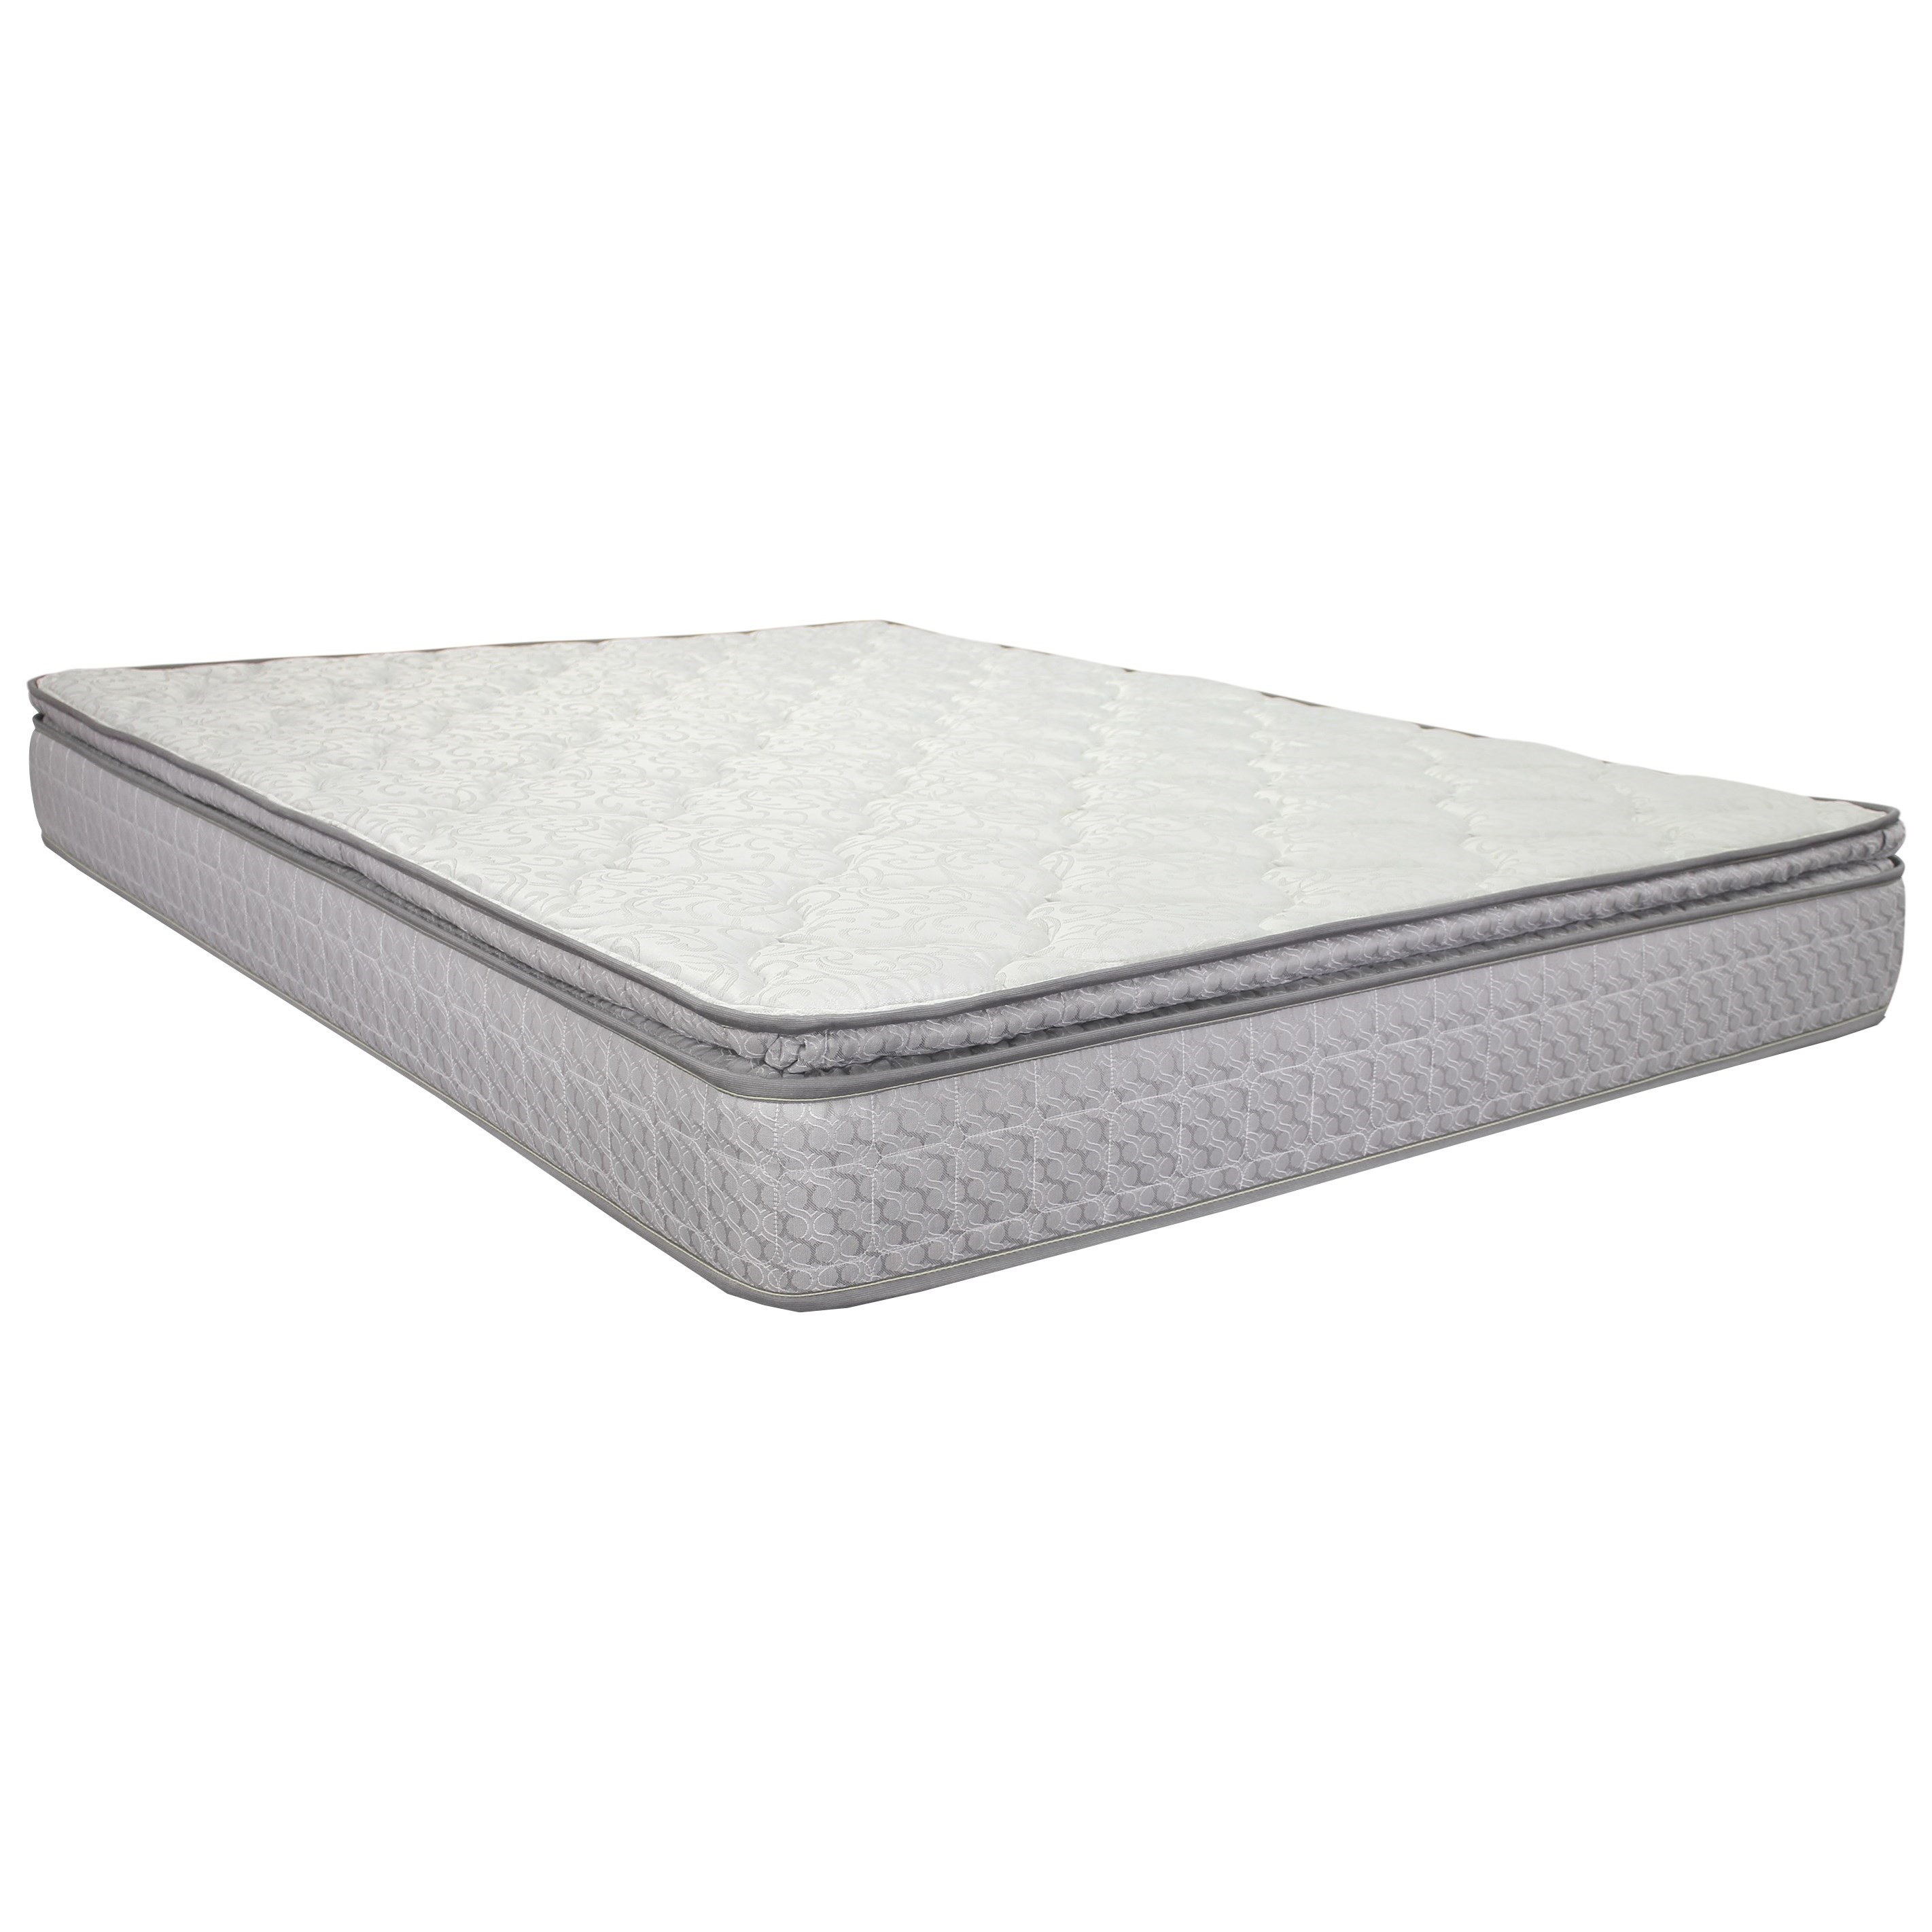 "Twin 9 1/2"" Pillowtop Innerspring Mattress"